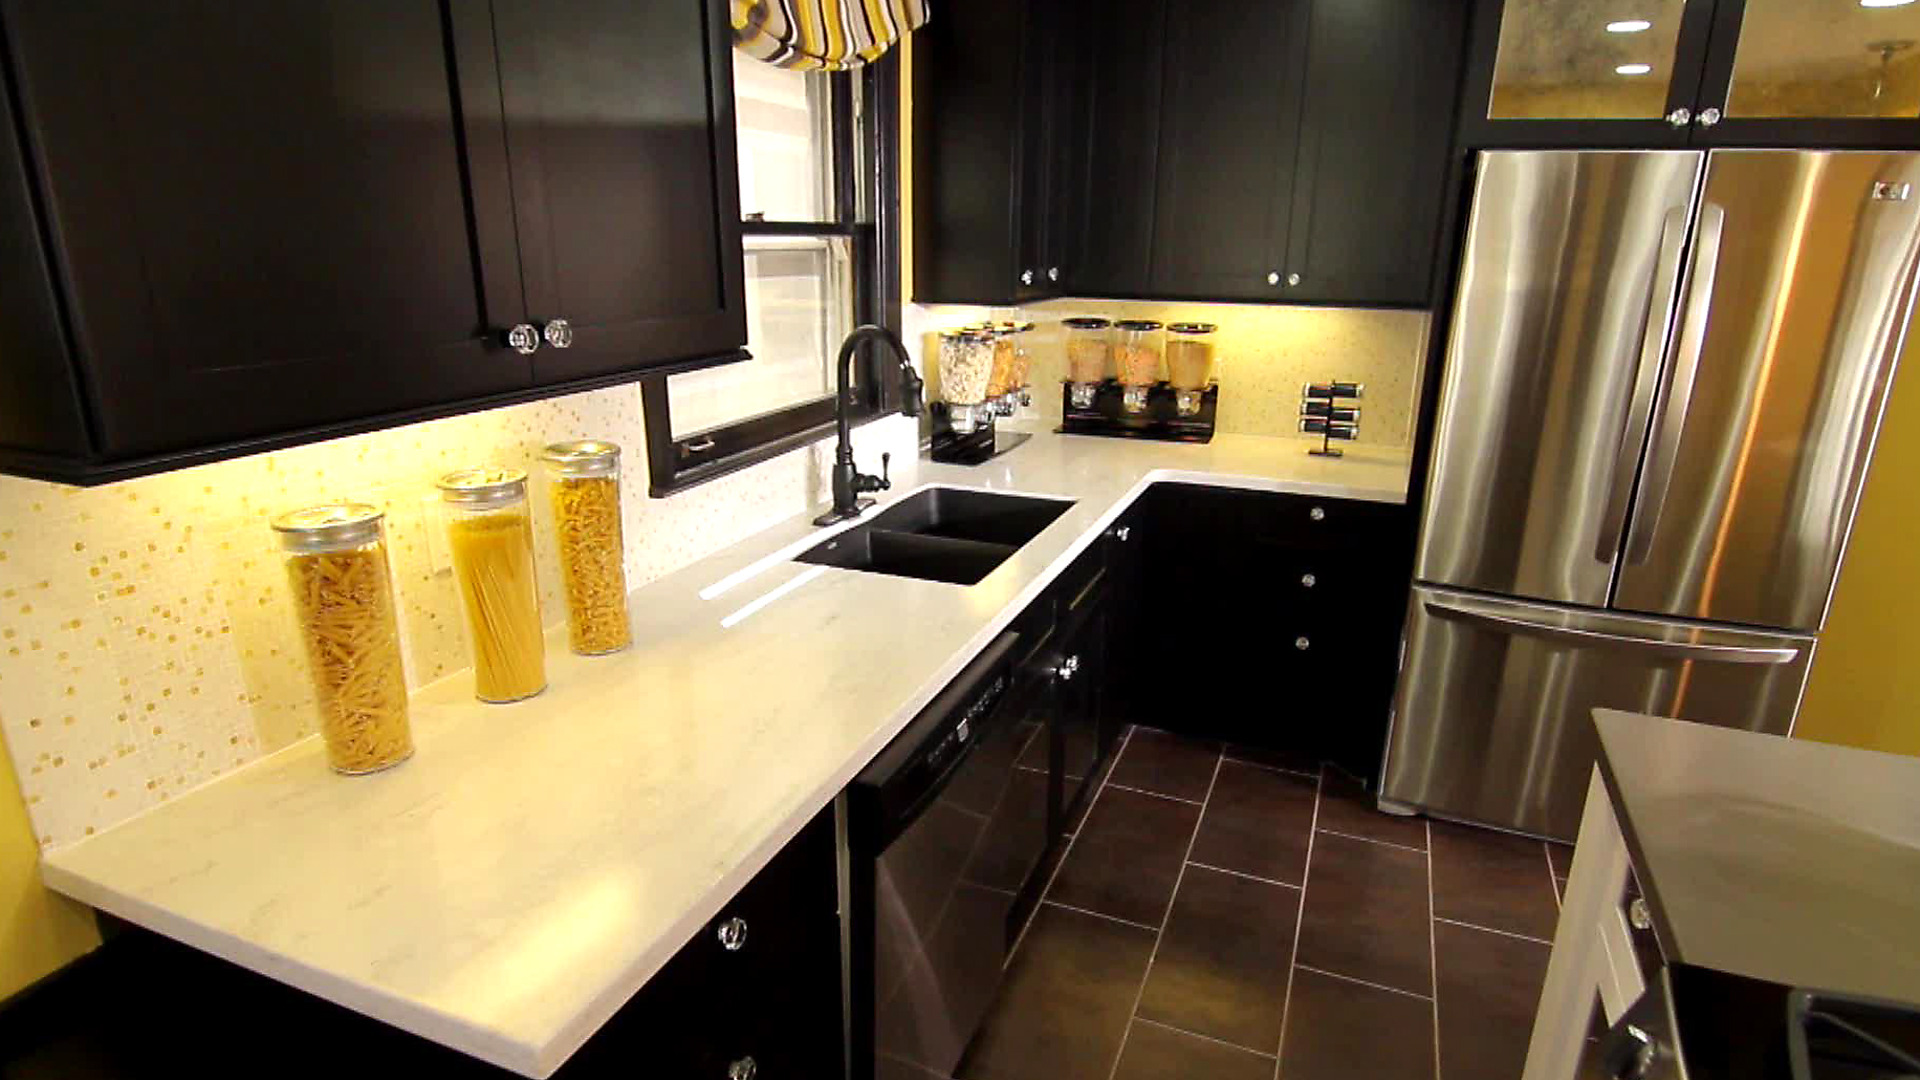 Painting Kitchen Walls: Pictures, Ideas & Tips From HGTV | HGTV